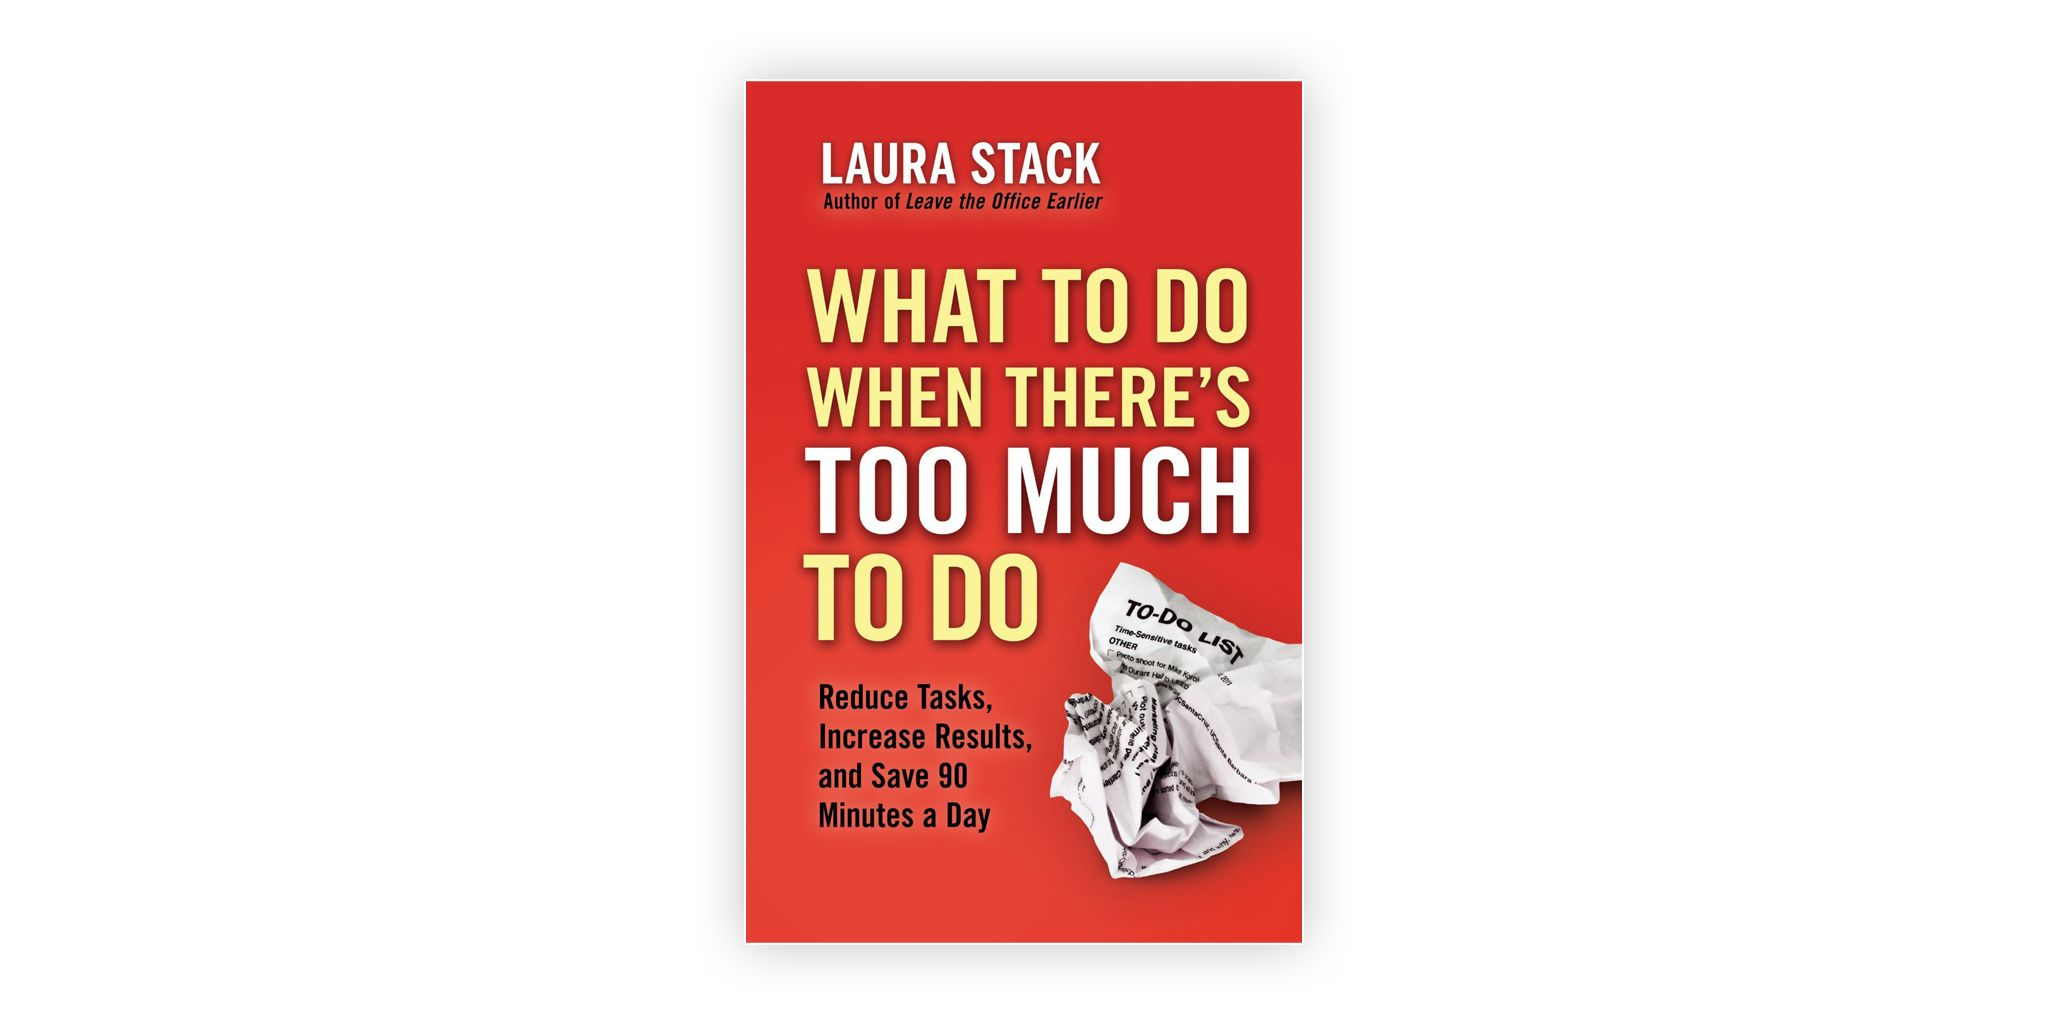 Laura stack book